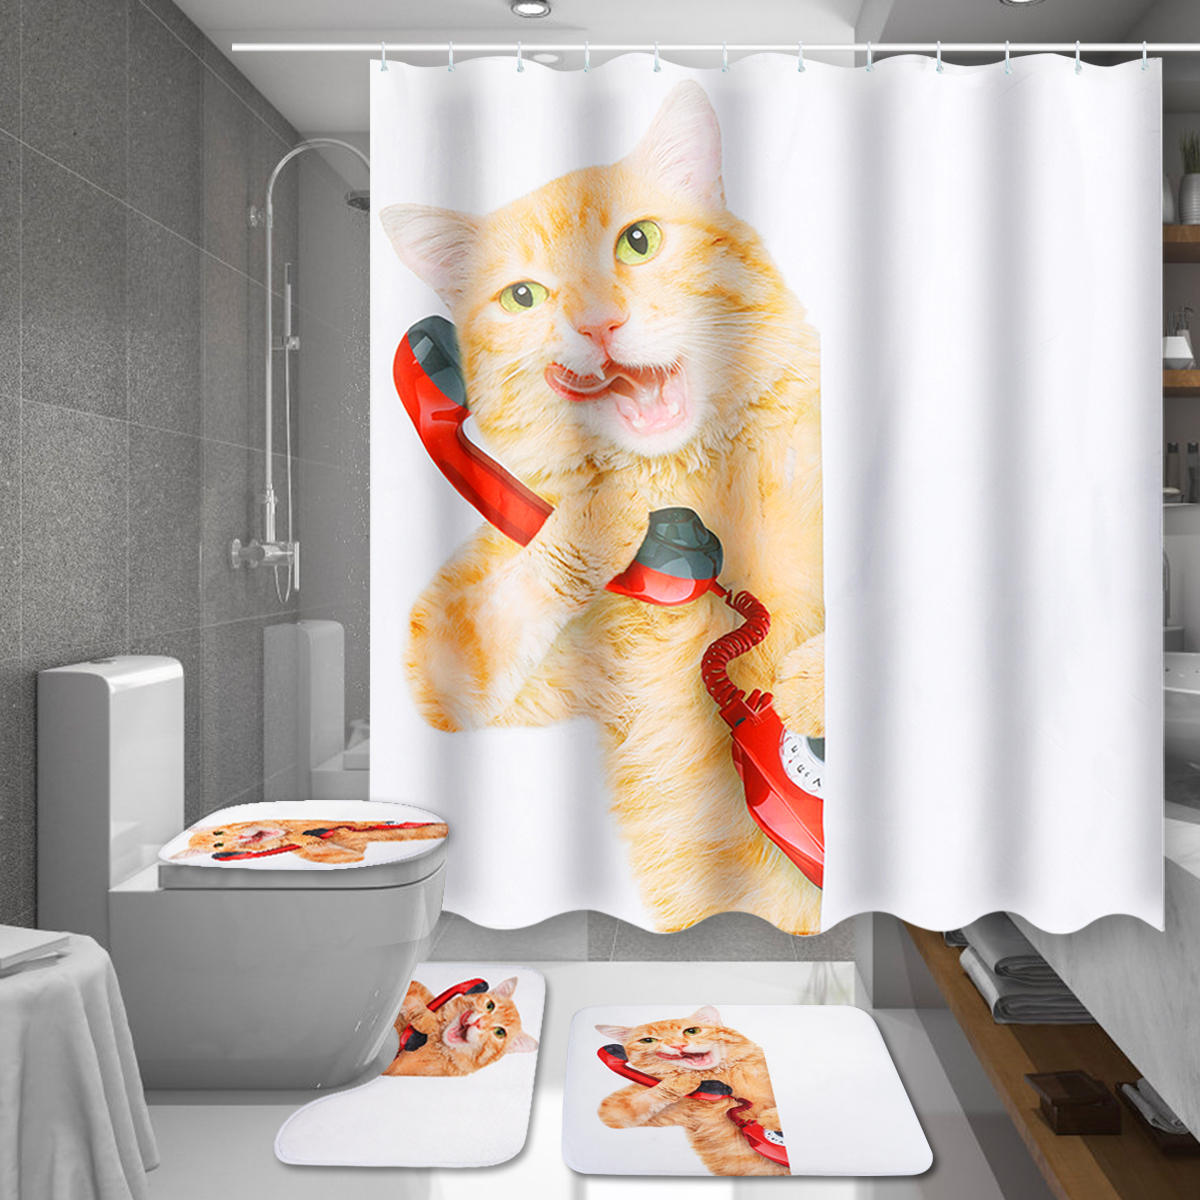 150 180x180cm Cat Bathroom Waterproof Shower Curtain With 12 White C Shaped Plastic Hooks